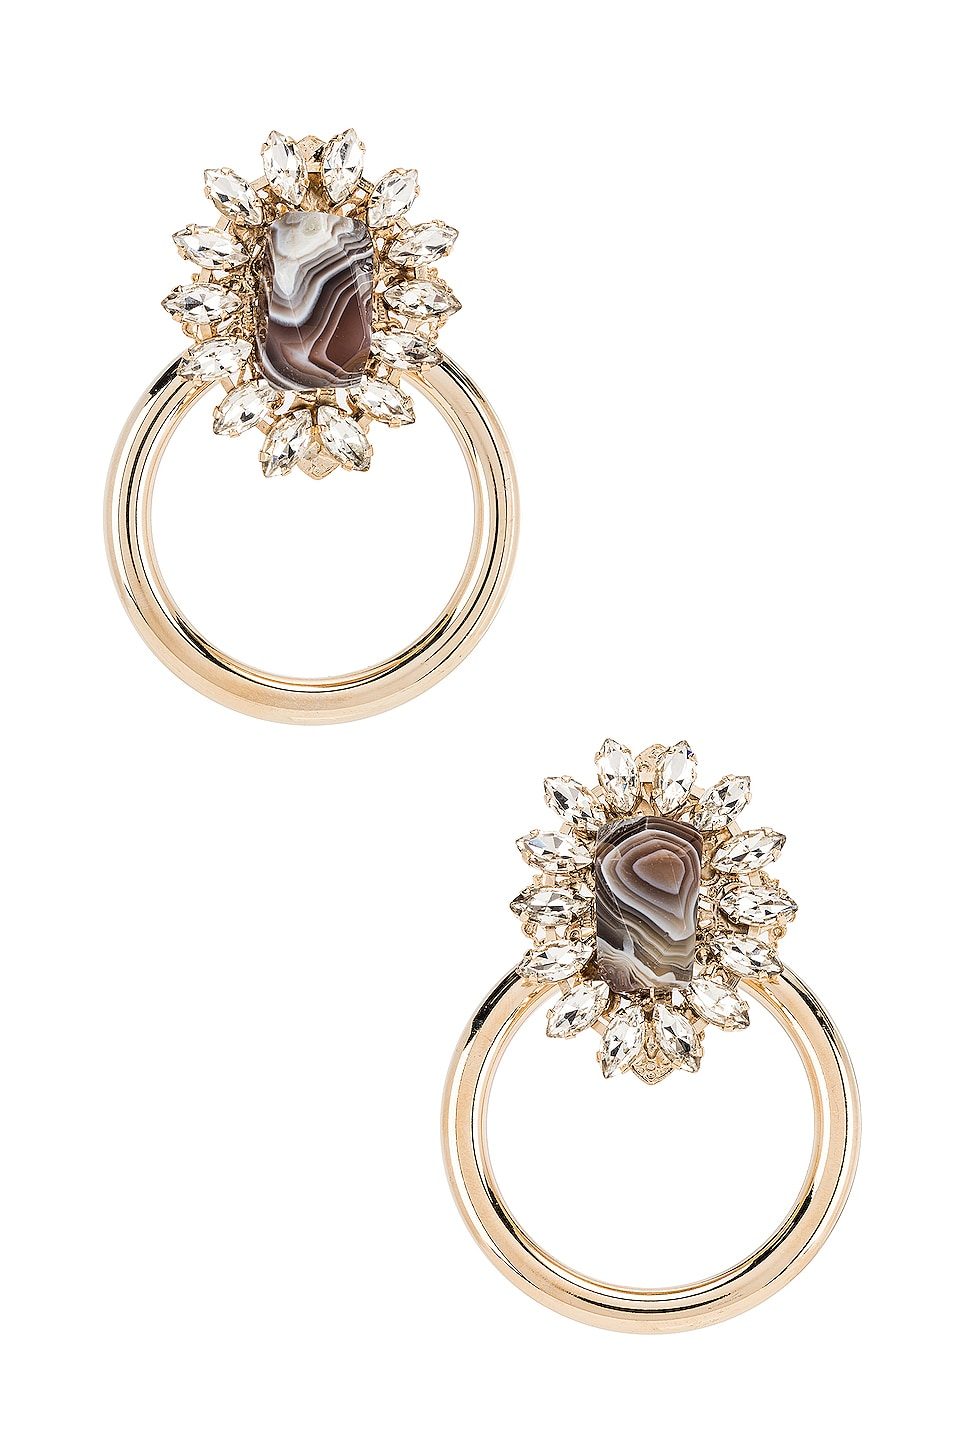 Anton Heunis Big Ring Earring in Grey & Gold